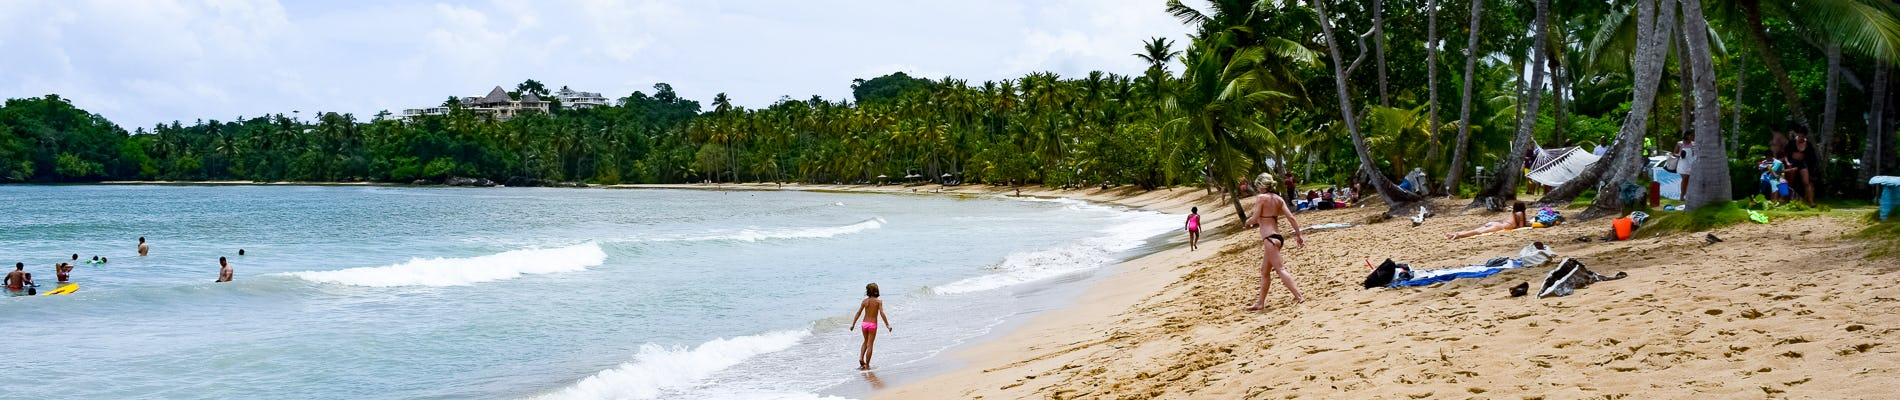 Playa Bonita The Beautiful Beach Of Peninsula Samaná